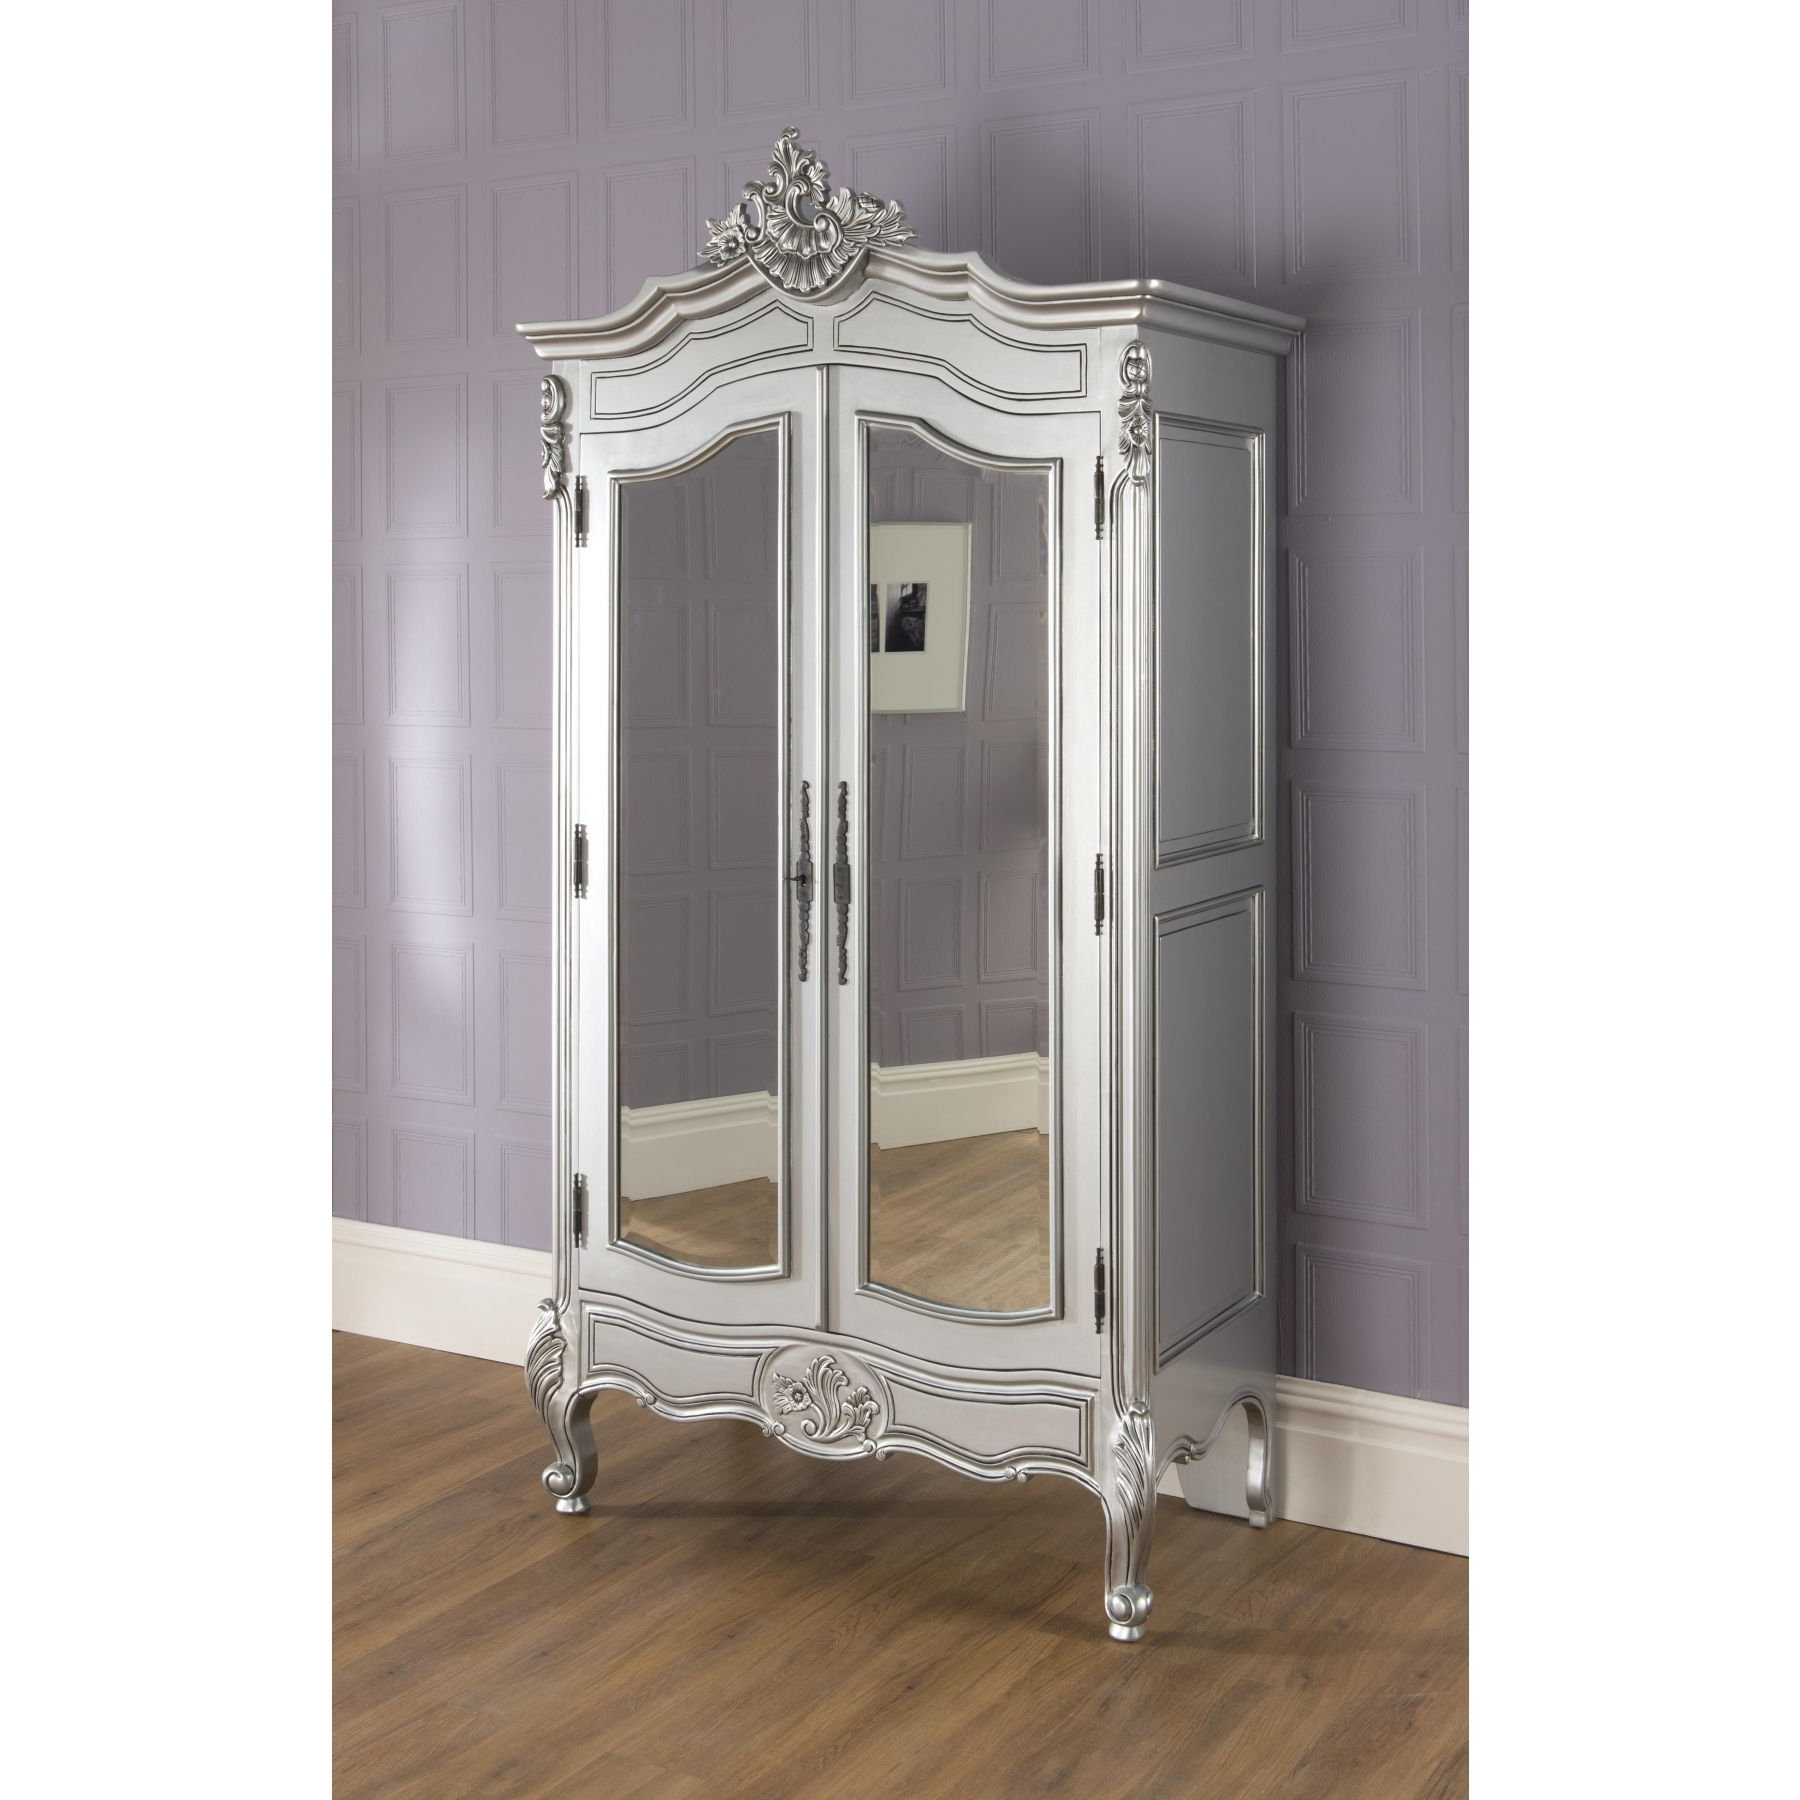 Chic Wardrobes Pertaining To Most Popular Bedroom: Antique Interior Storage Design With Wardrobe Armoire (View 9 of 15)